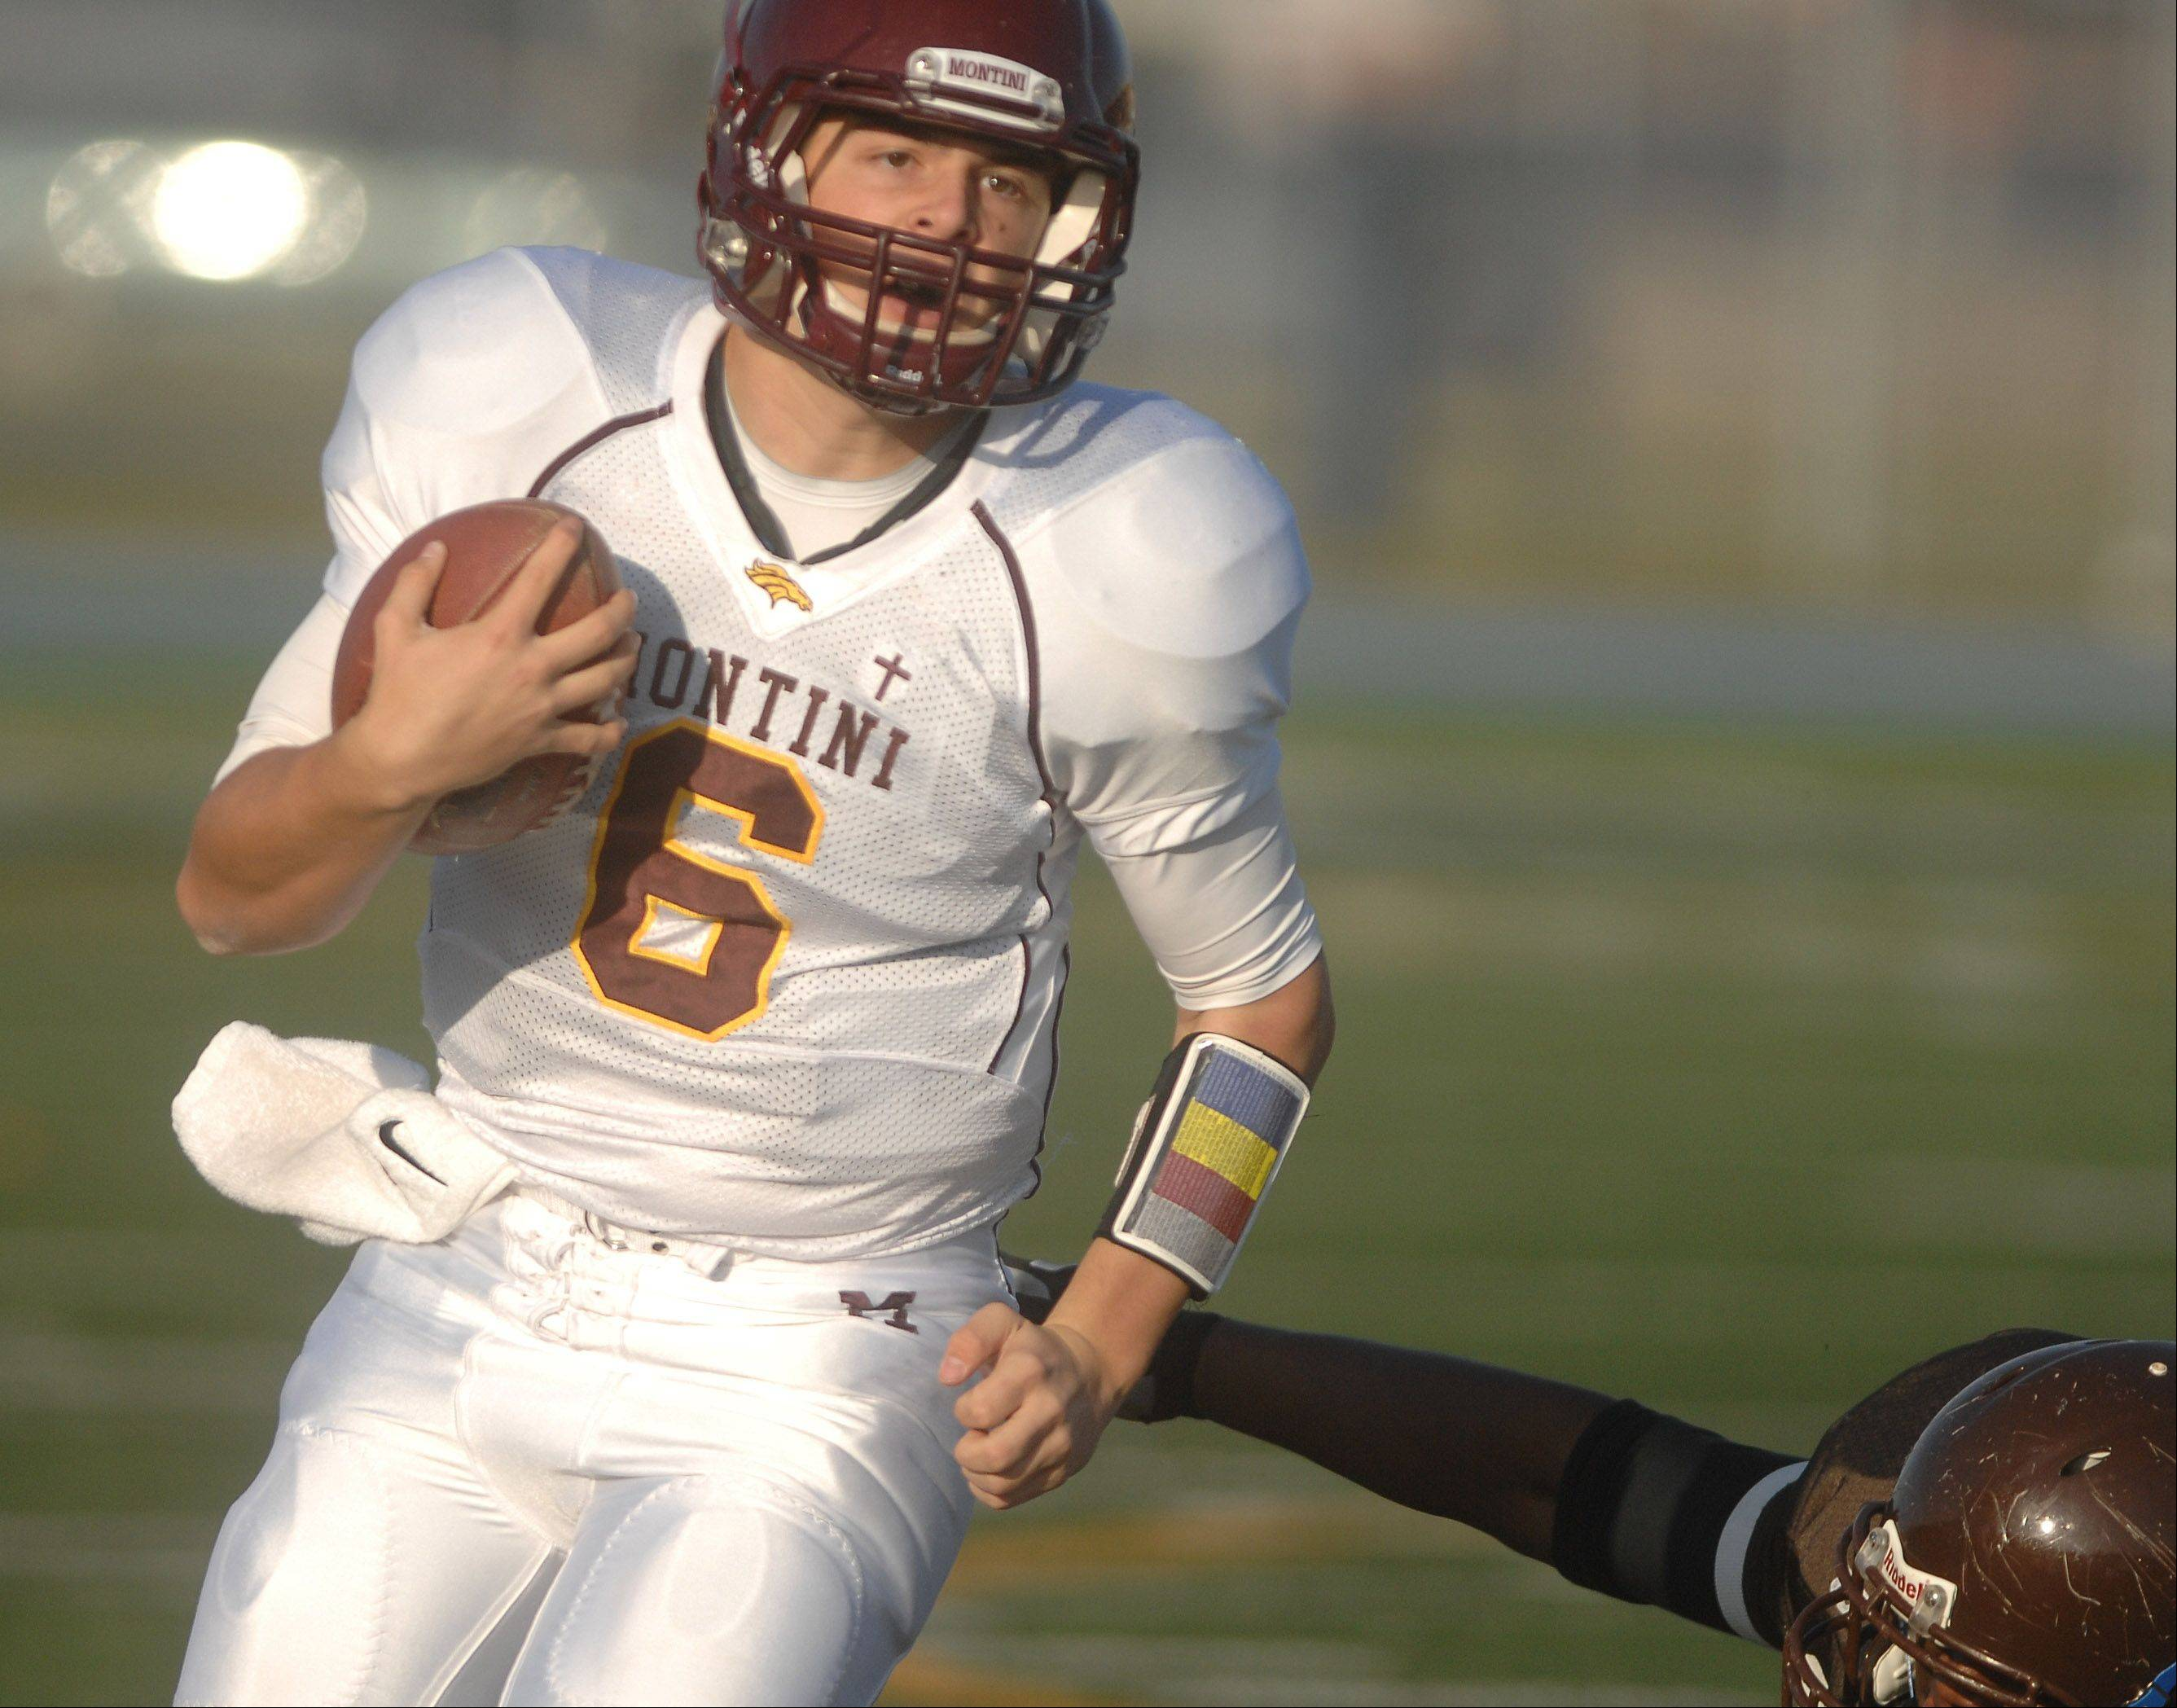 Alexander Wills of Montini moves the ball during the Montini at Joliet Catholic Class 5A football semifinal action Saturday.